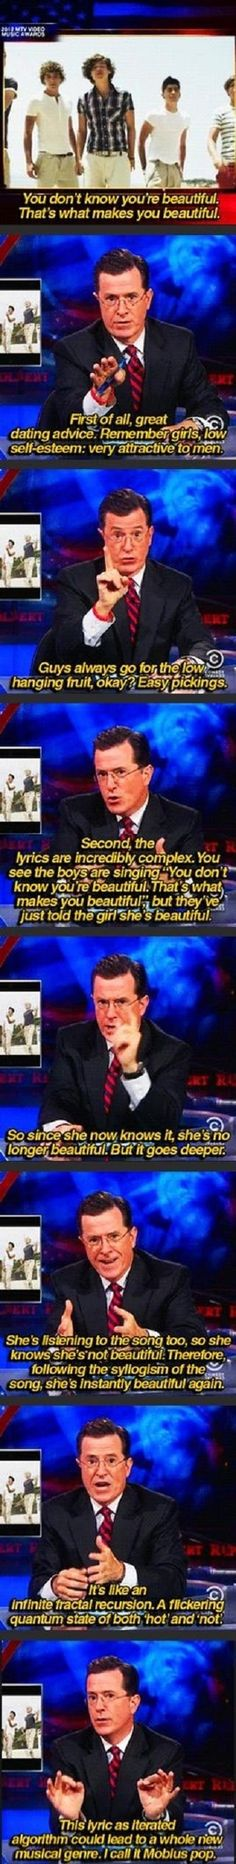 Stephen Colbert talking about One Direction's song lyrics